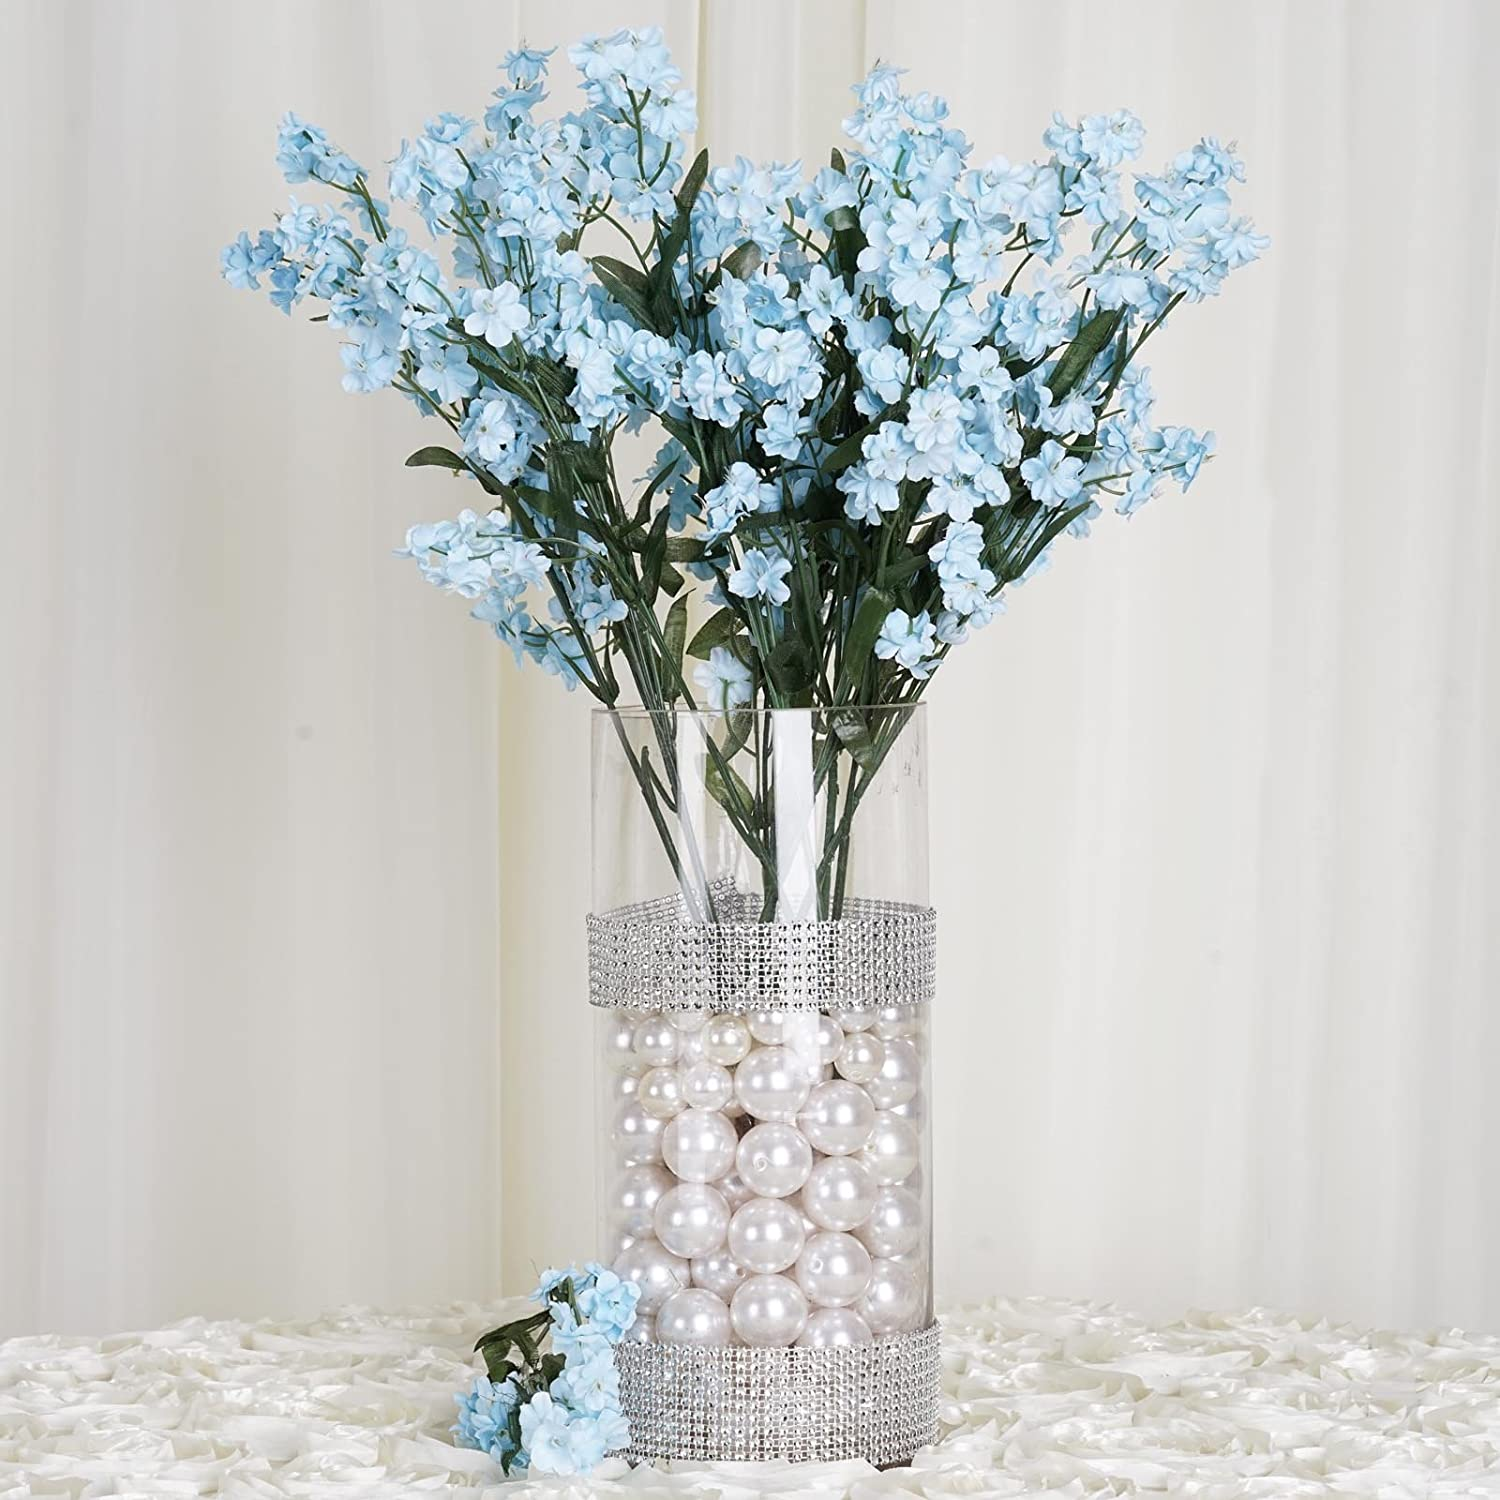 Amazon efavormart 12 bushes baby breath artificial filler amazon efavormart 12 bushes baby breath artificial filler flowers for diy wedding bouquets centerpieces party home decoration light blue home izmirmasajfo